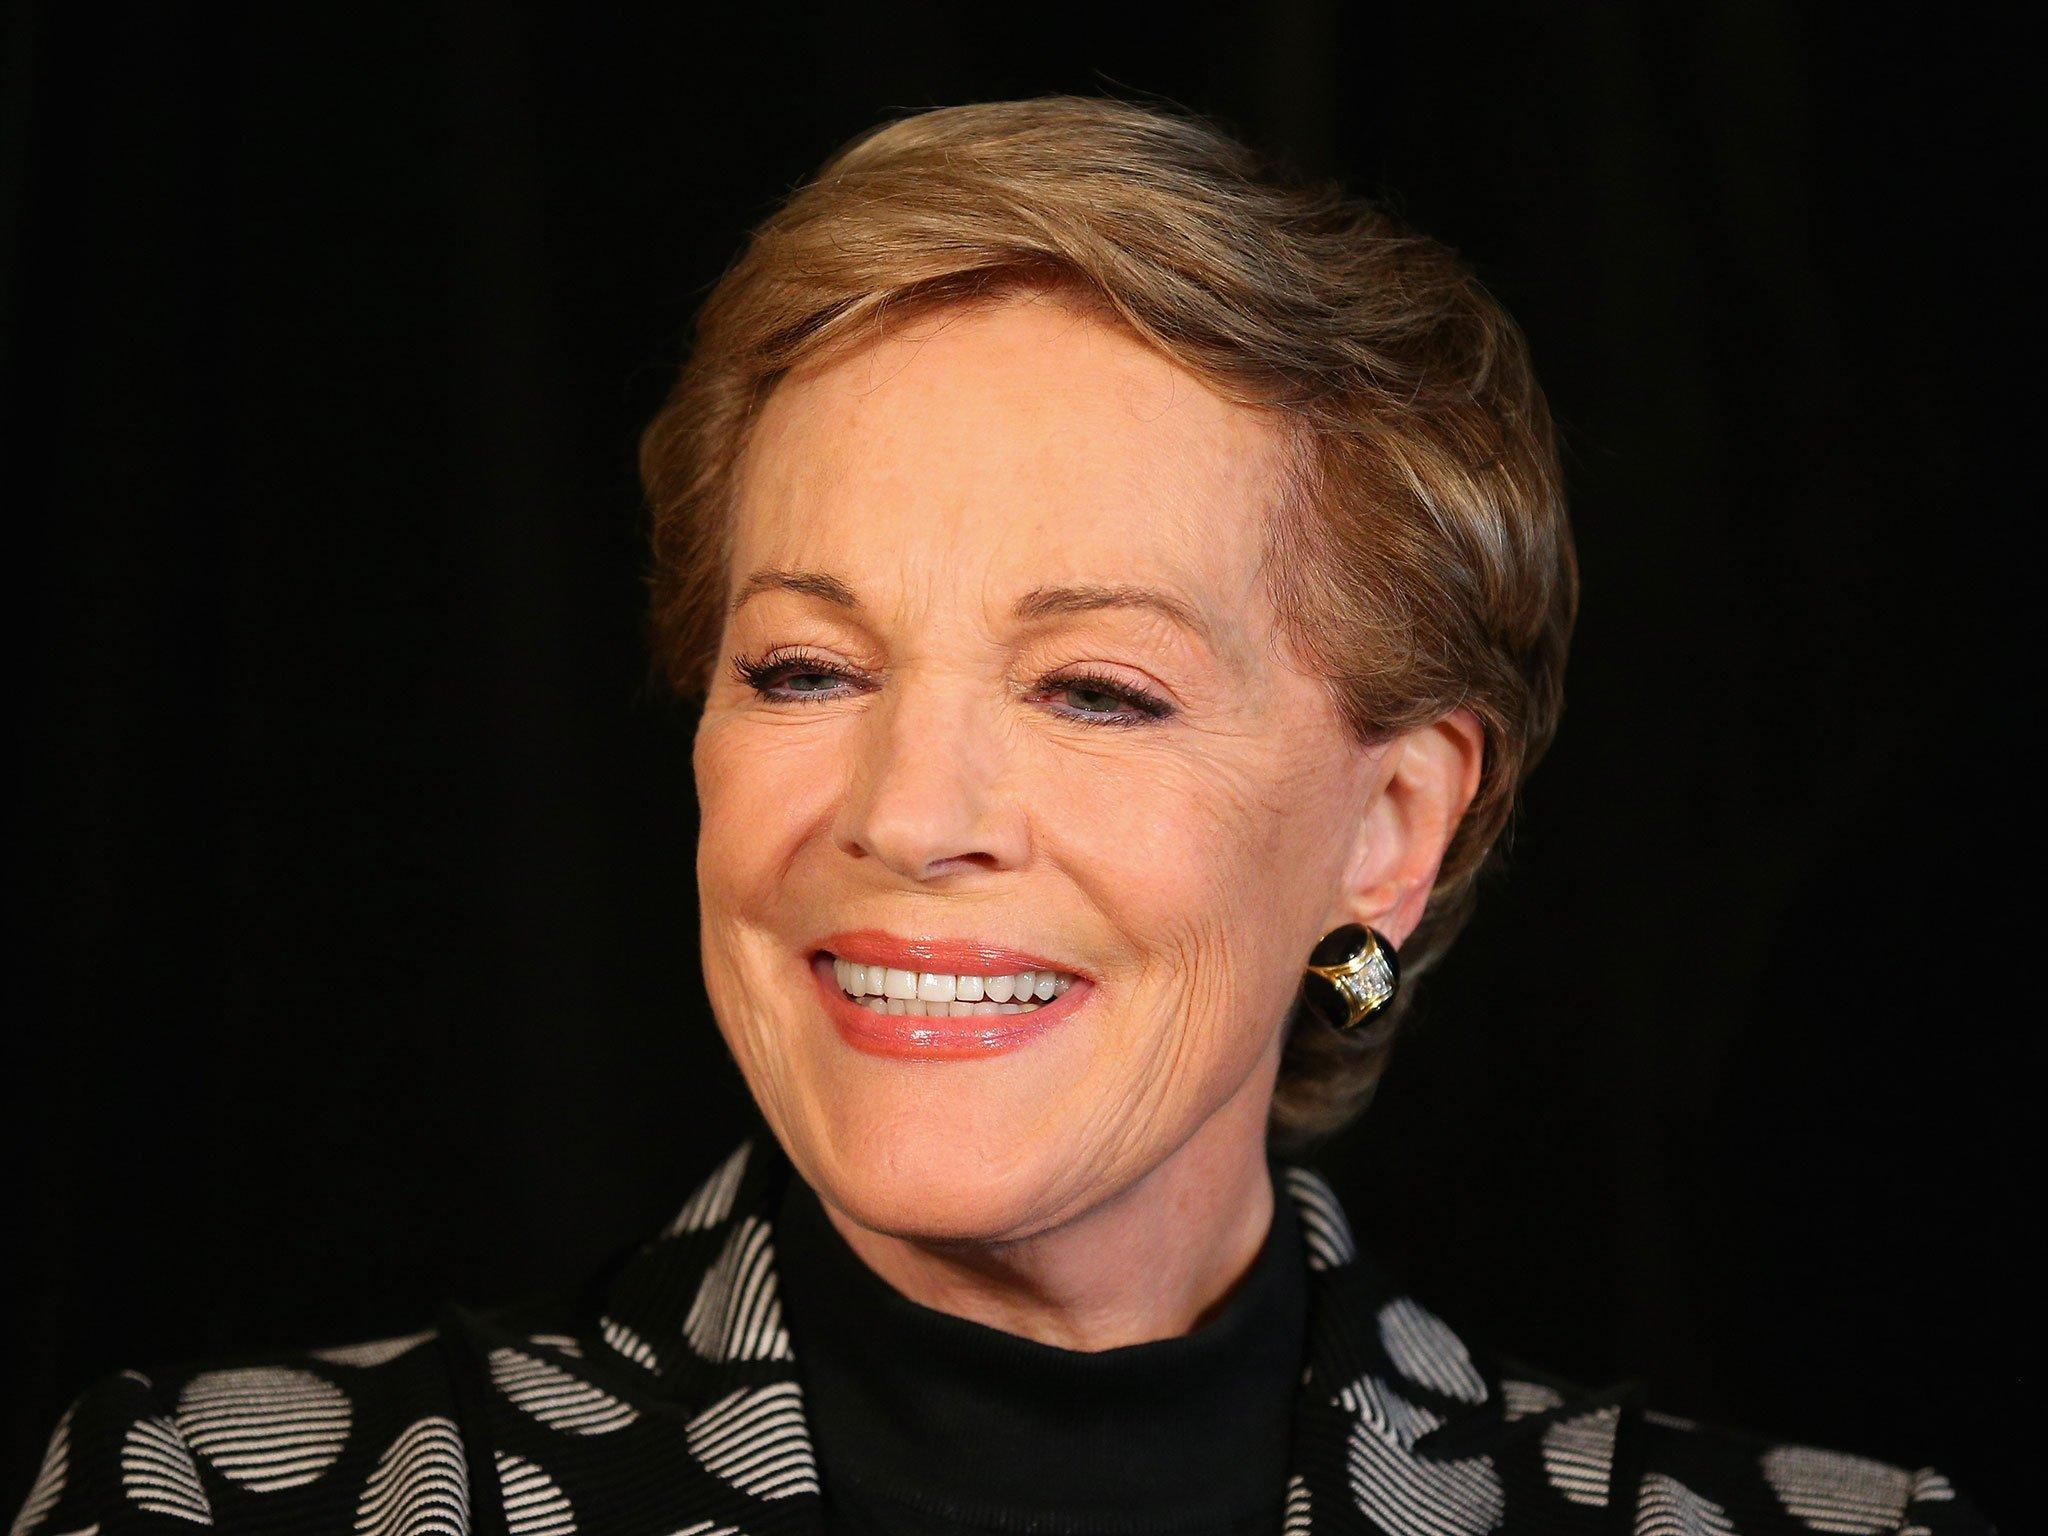 Julie Andrews turns 80: An appreciation of the Mary Poppins star's